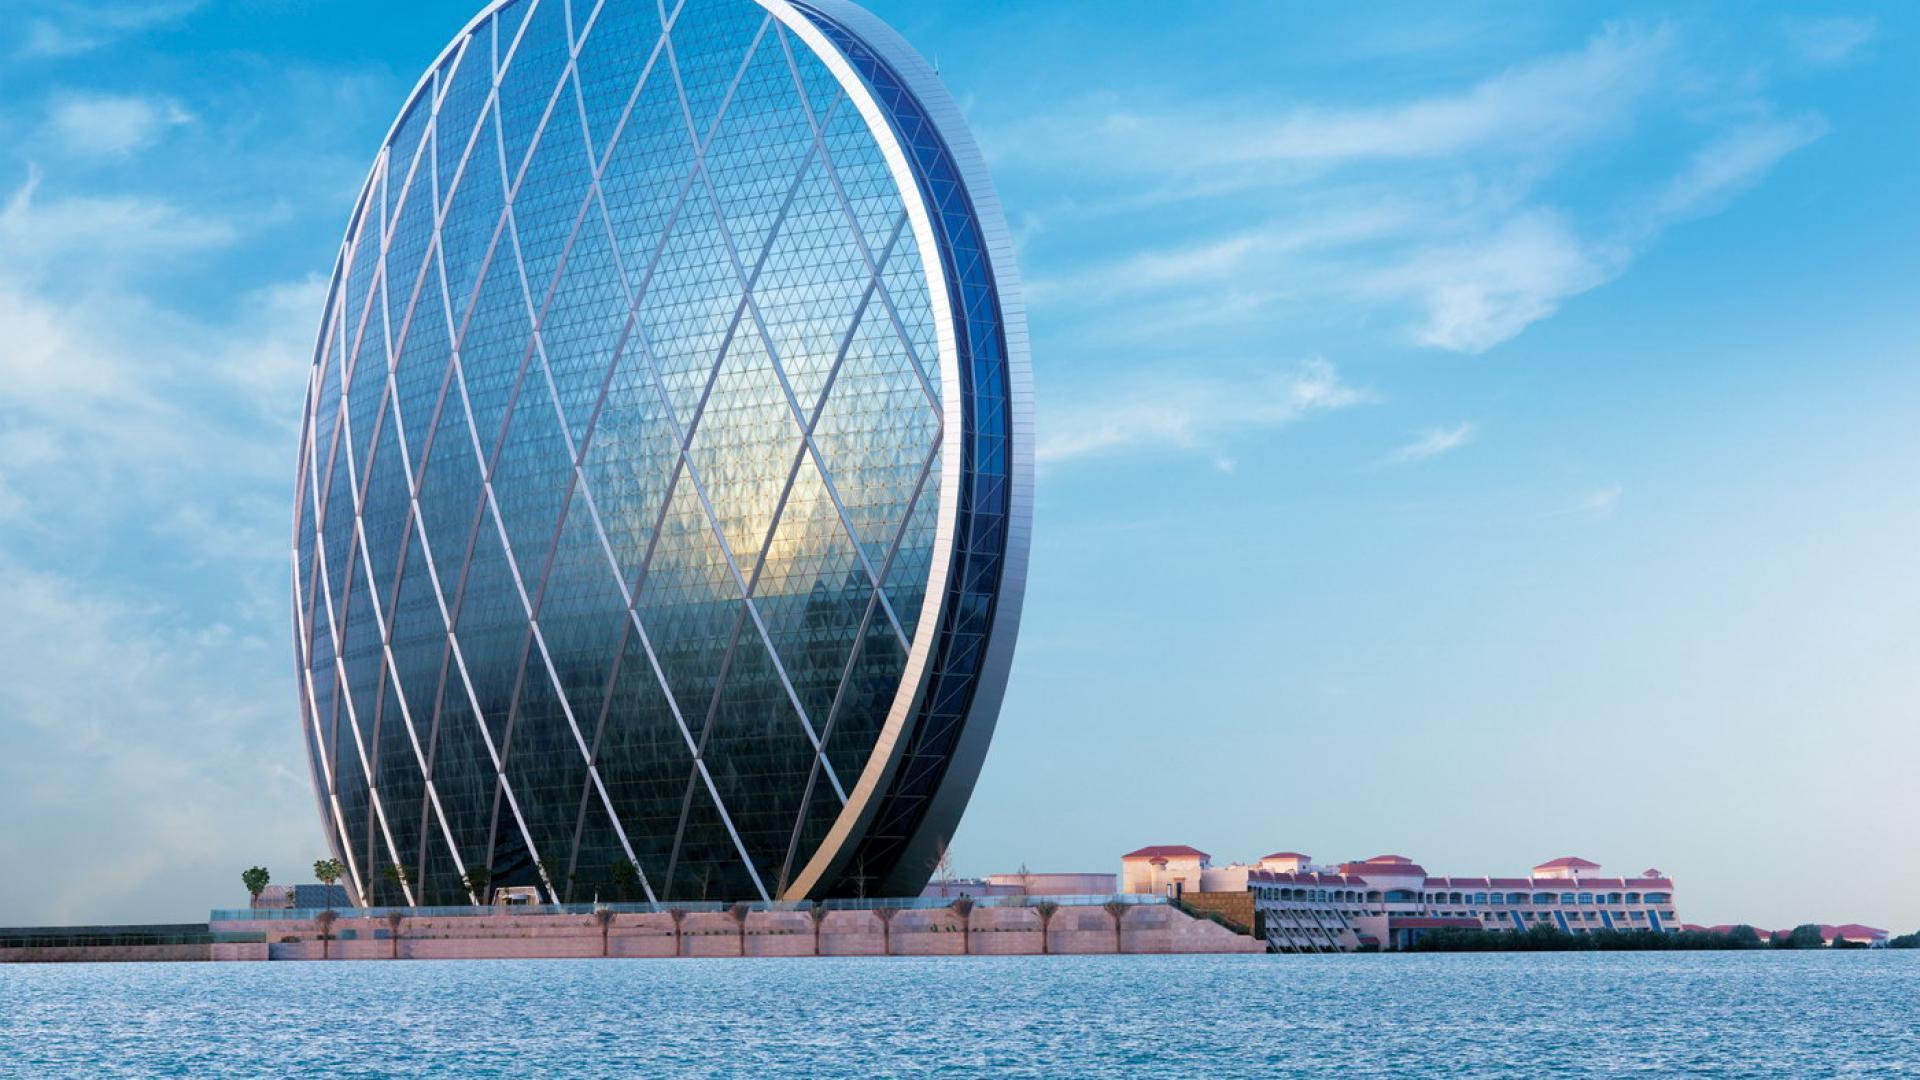 Abu Dhabi Wallpapers, 42 Widescreen FHDQ Wallpapers of Abu Dhabi